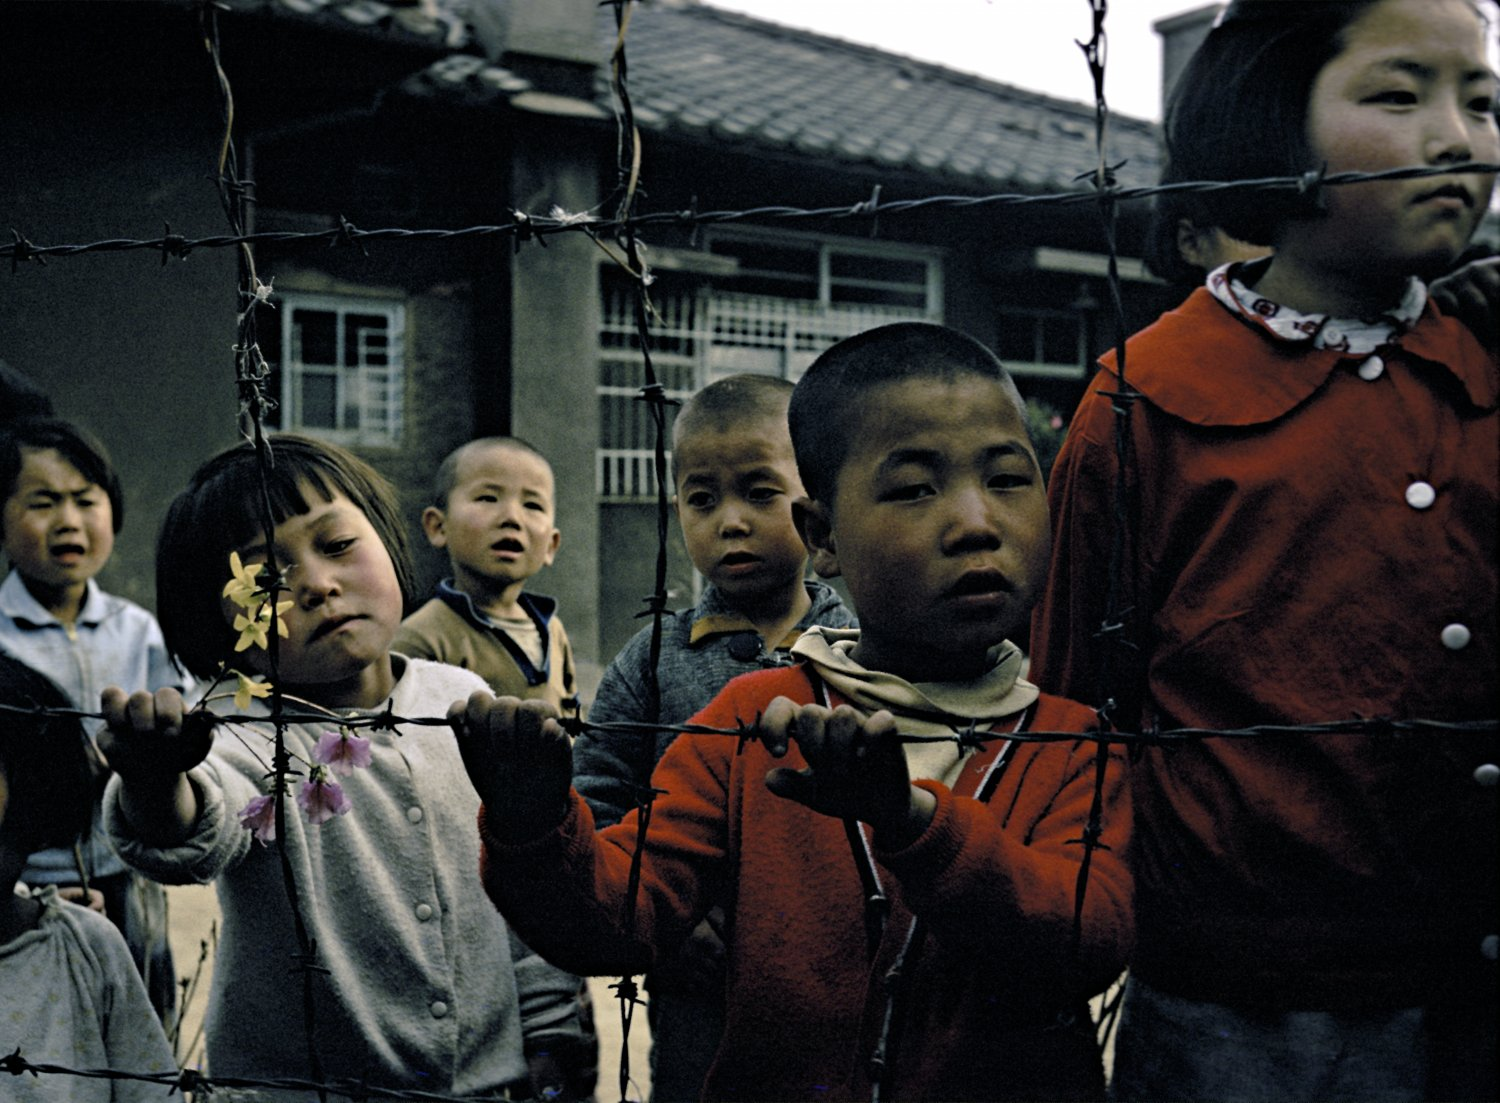 at a mixed blood orphanage in Seoul, Korea 1965 - Korean orphanage - 1965 - Techno-Impressionist Museum - Techno-Impressionism - art - beautiful - photo photography picture - by Tony Karp